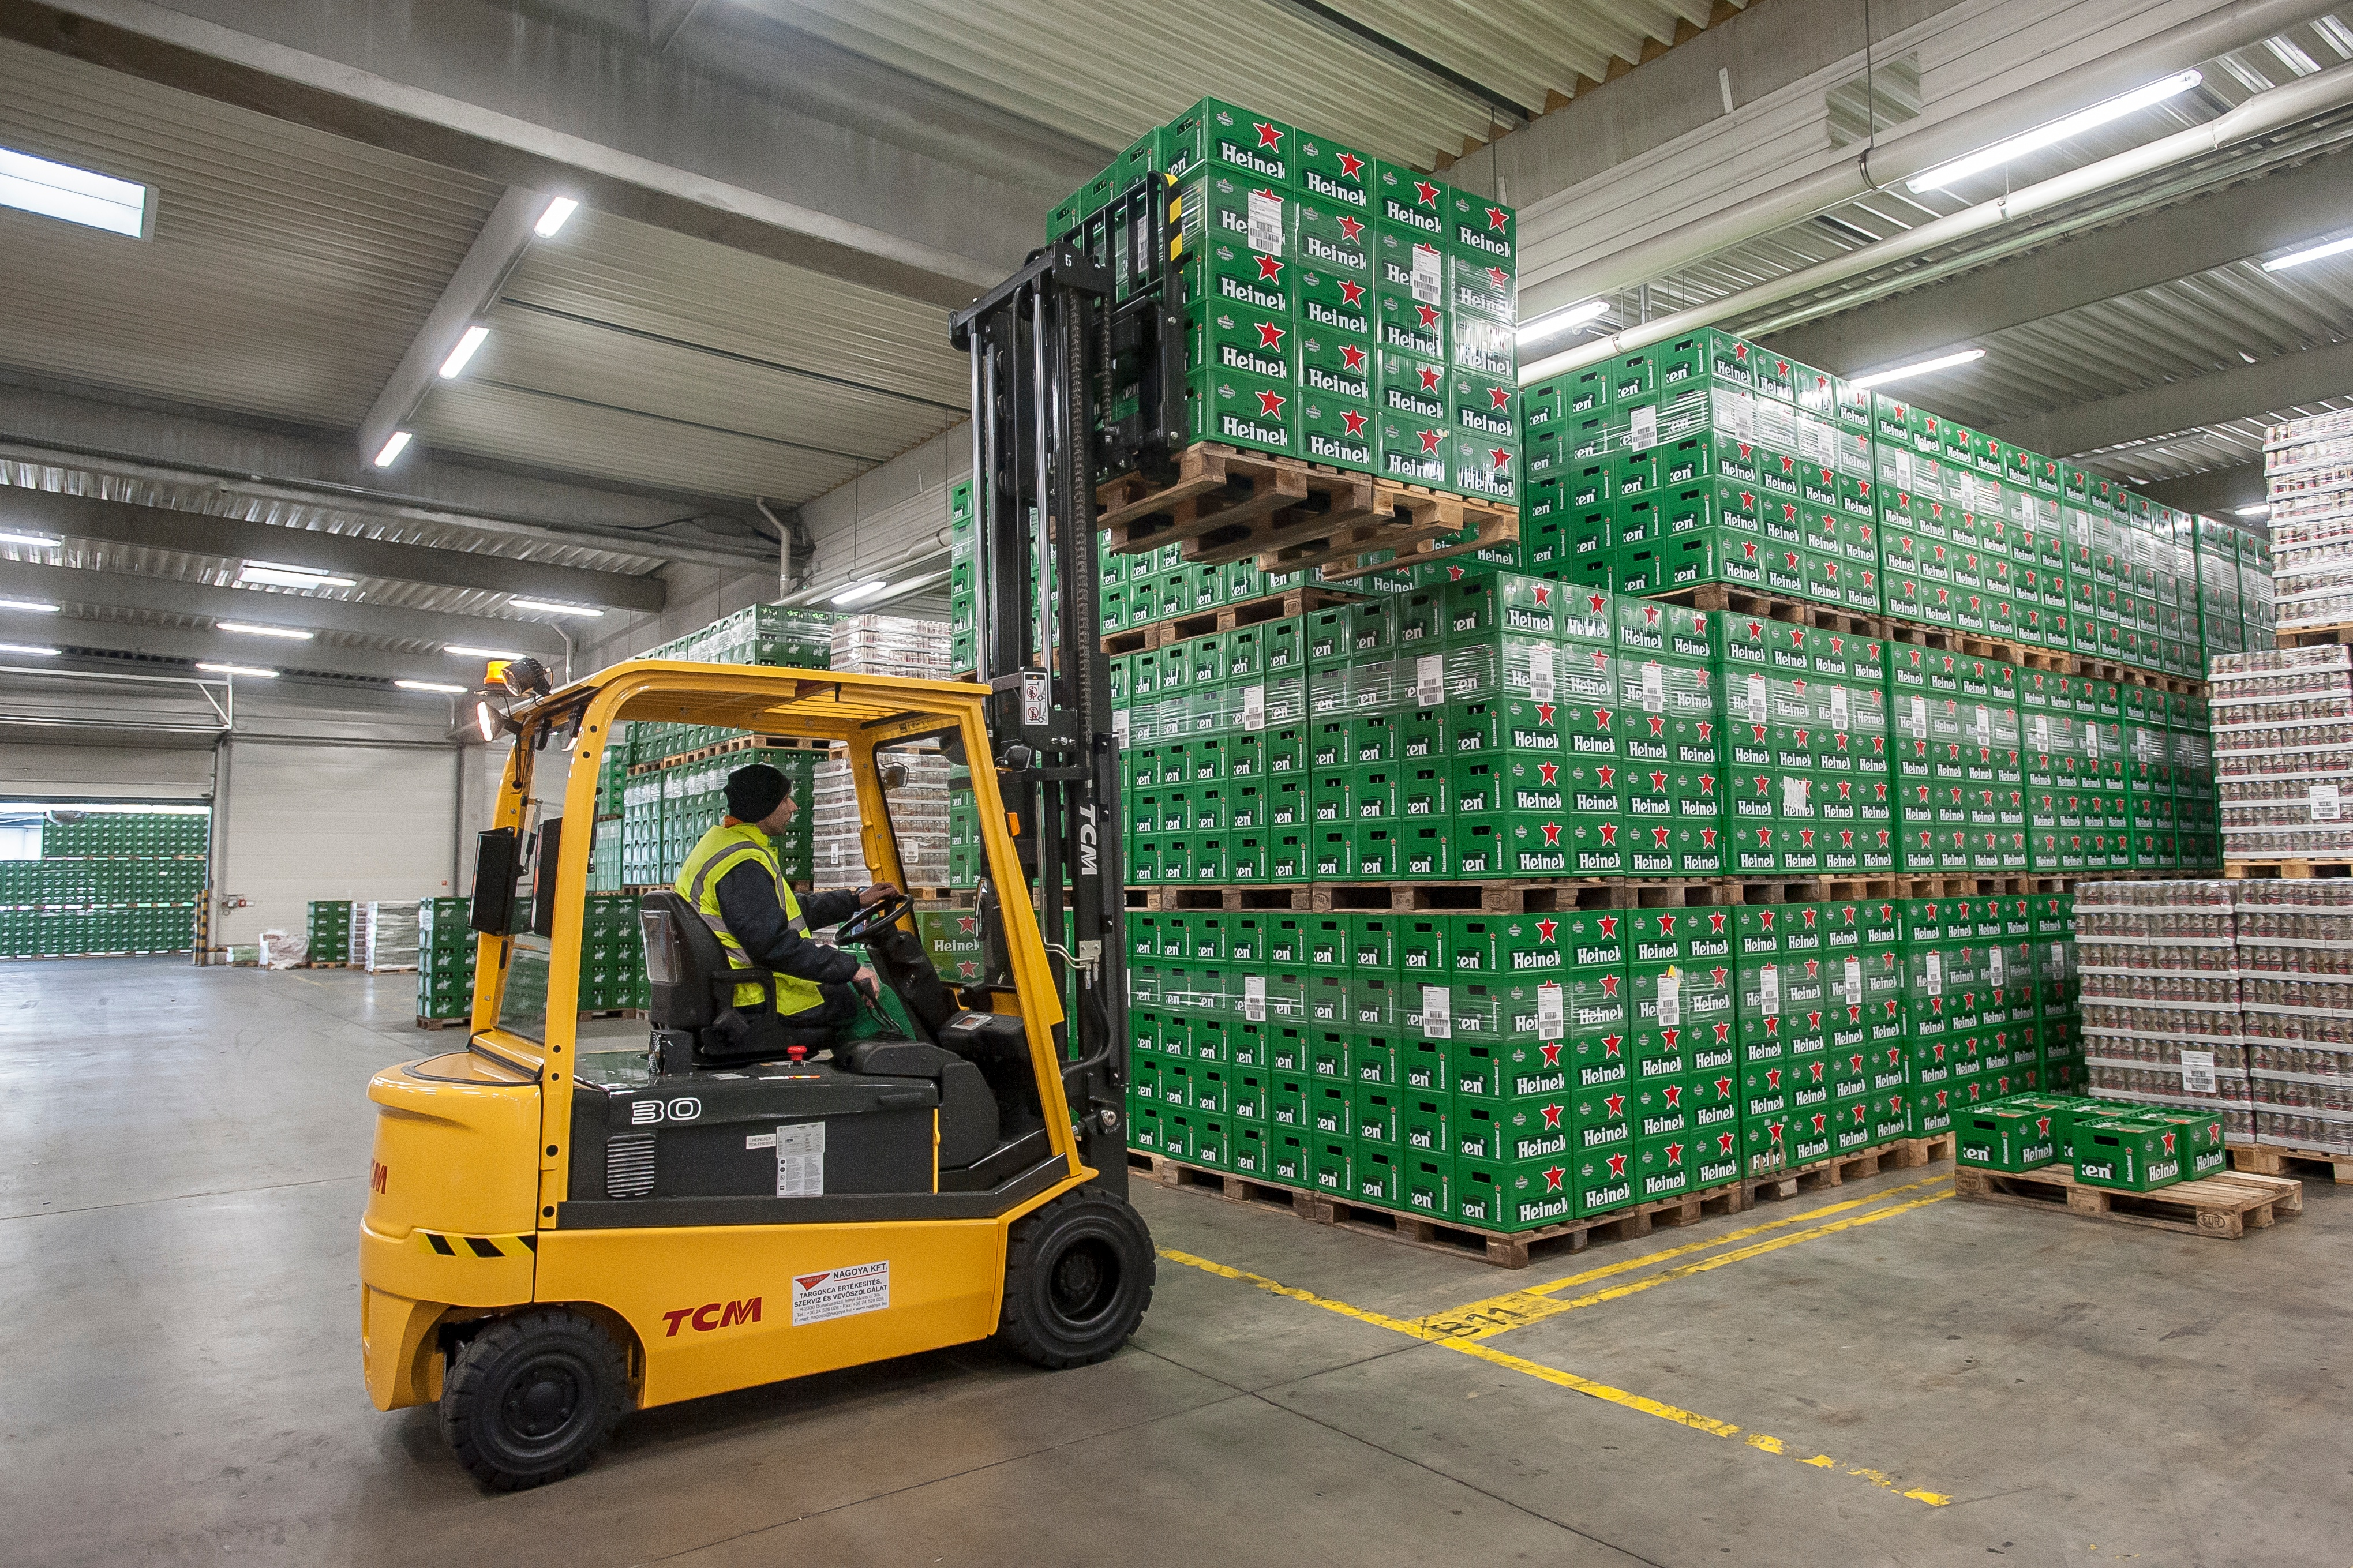 How TCM Forklifts Helped to Transform Heineken's Operation